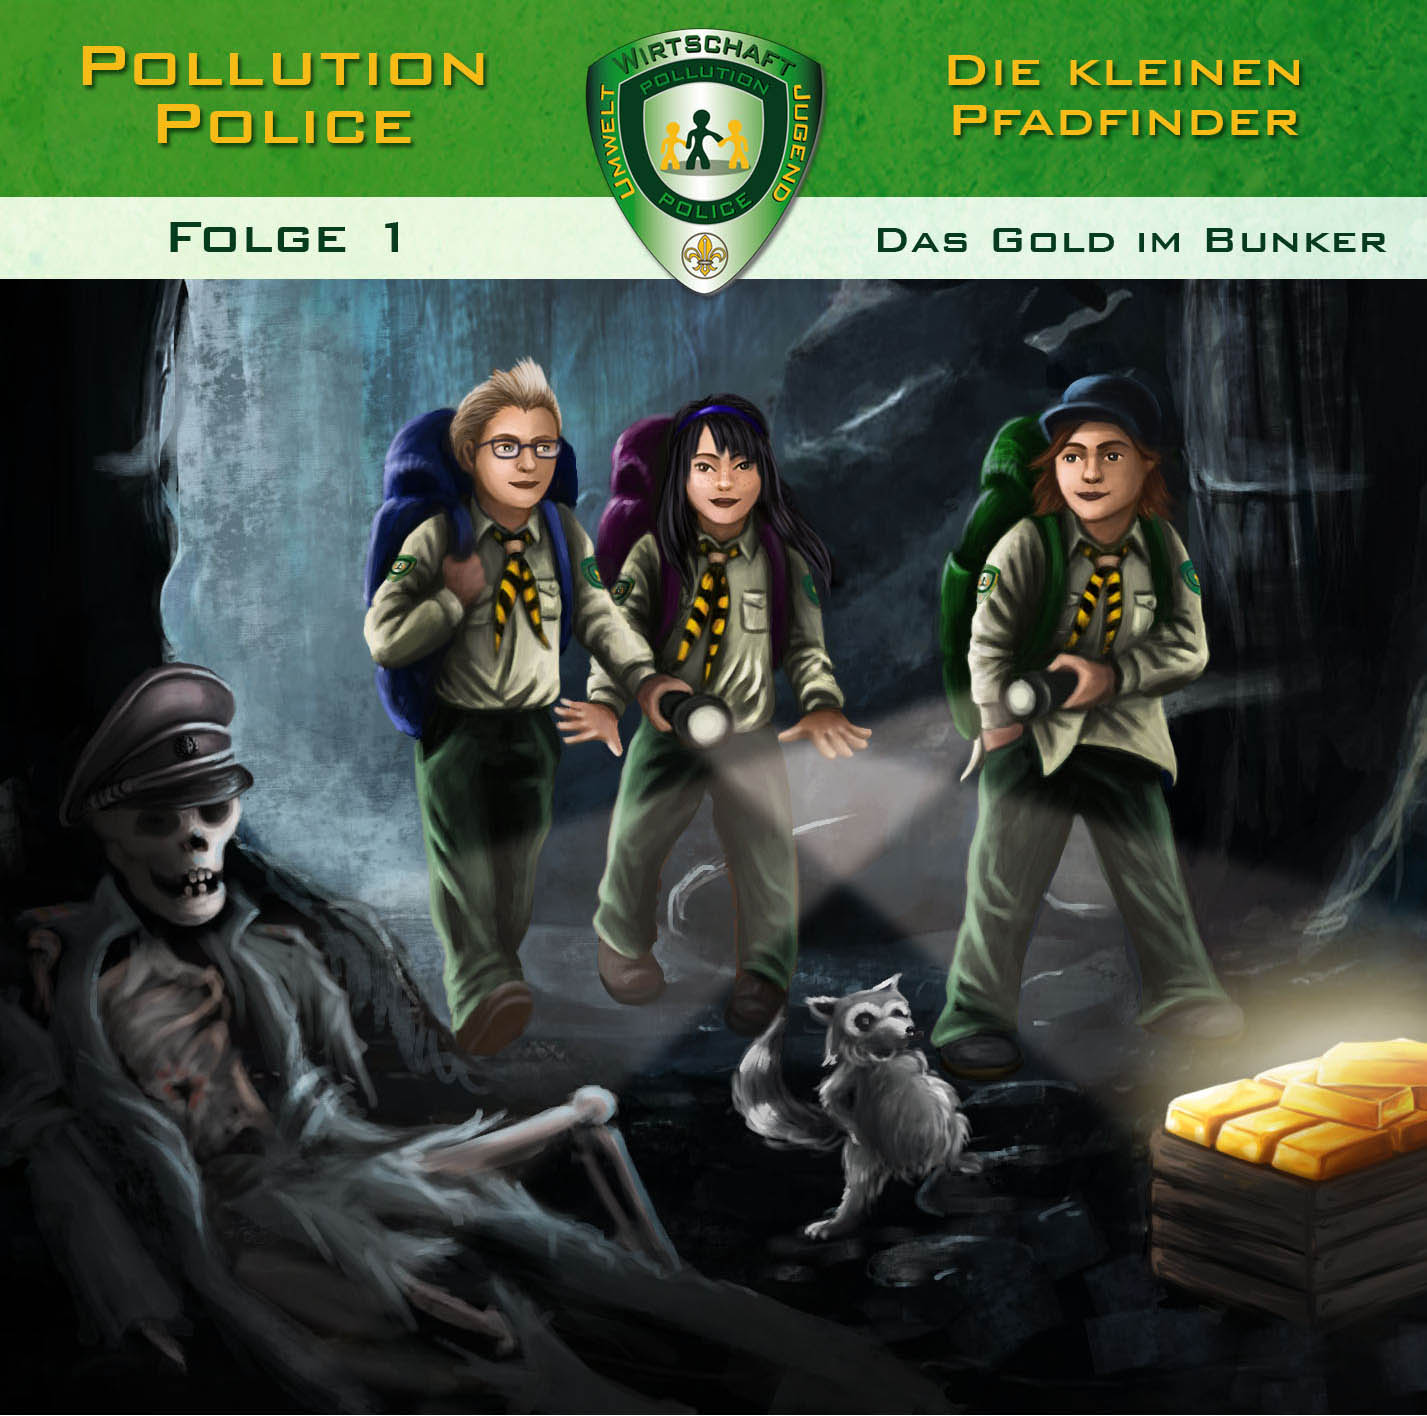 Pollution Police Das Gold im Bunker